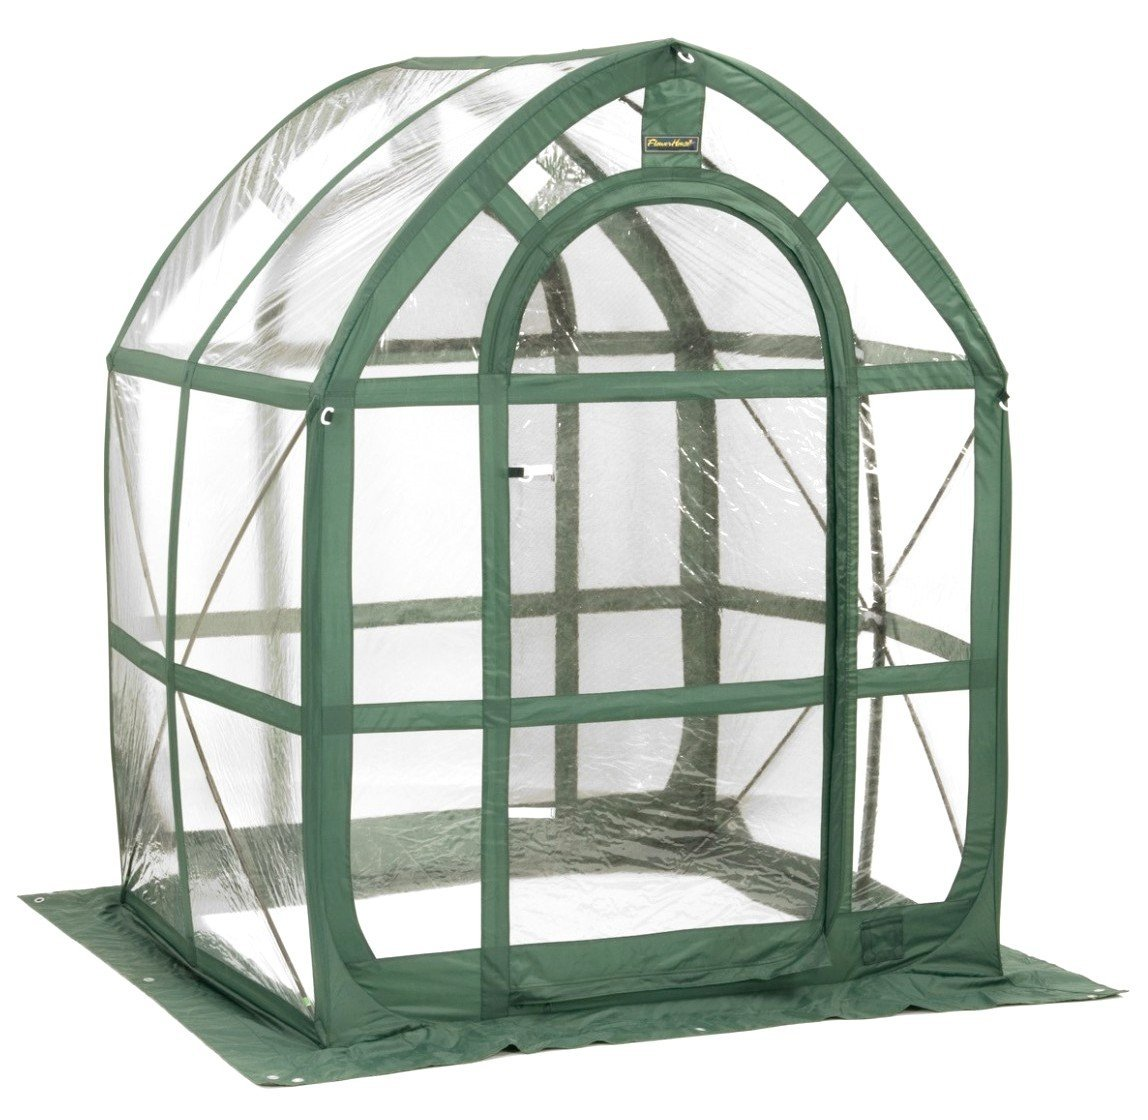 Mavis Garden Blog – Growing Vegetables in a Greenhouse